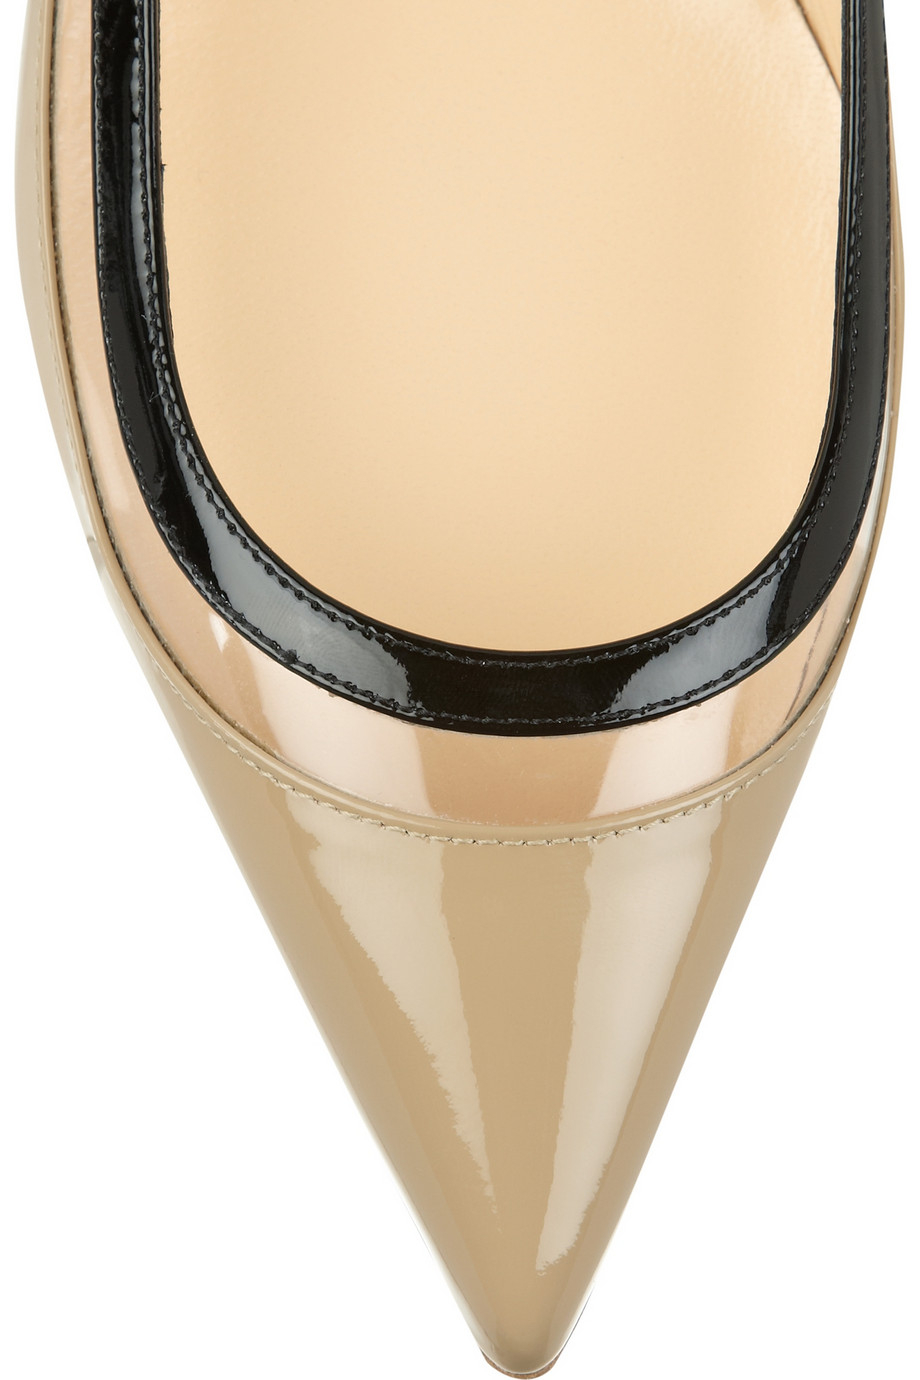 christian louboutin flats Beige metallic threading | cosmetics ...